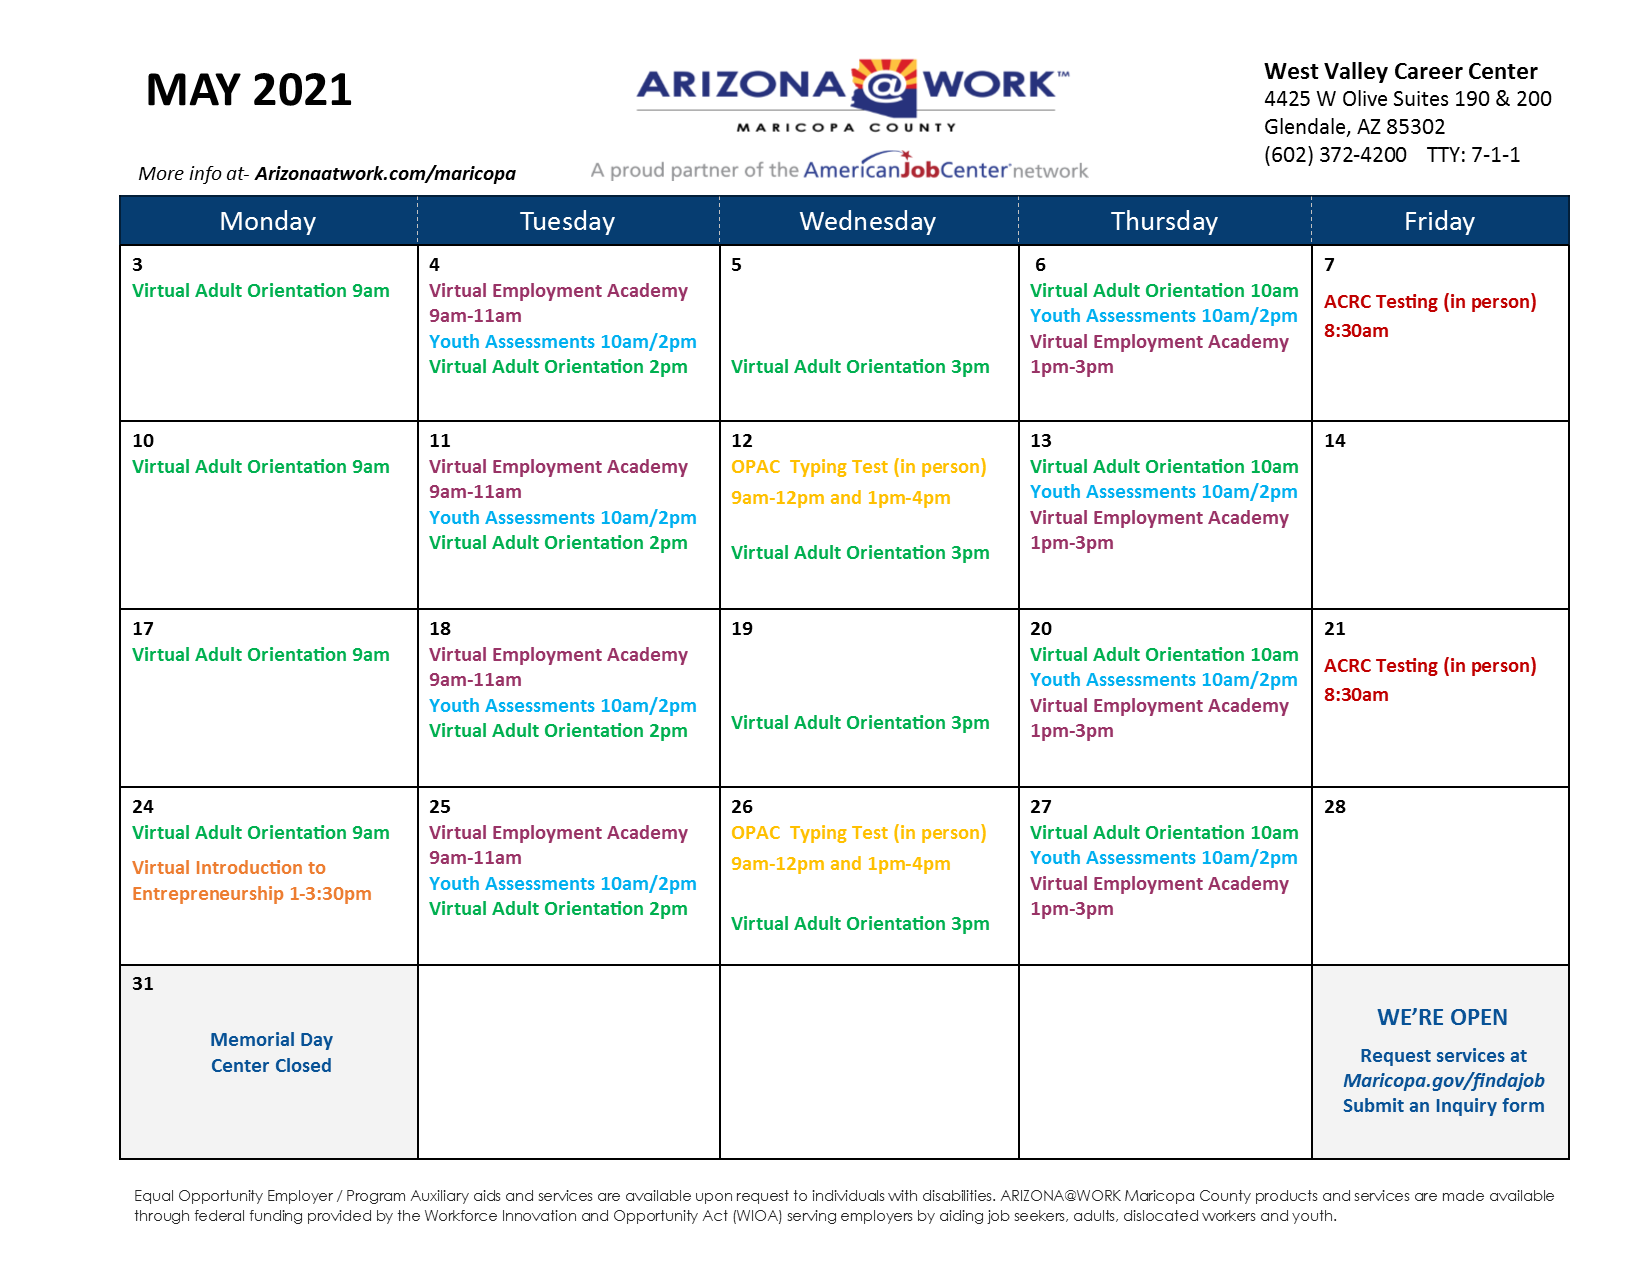 Maricopa County West Valley Center Calendar May 2021